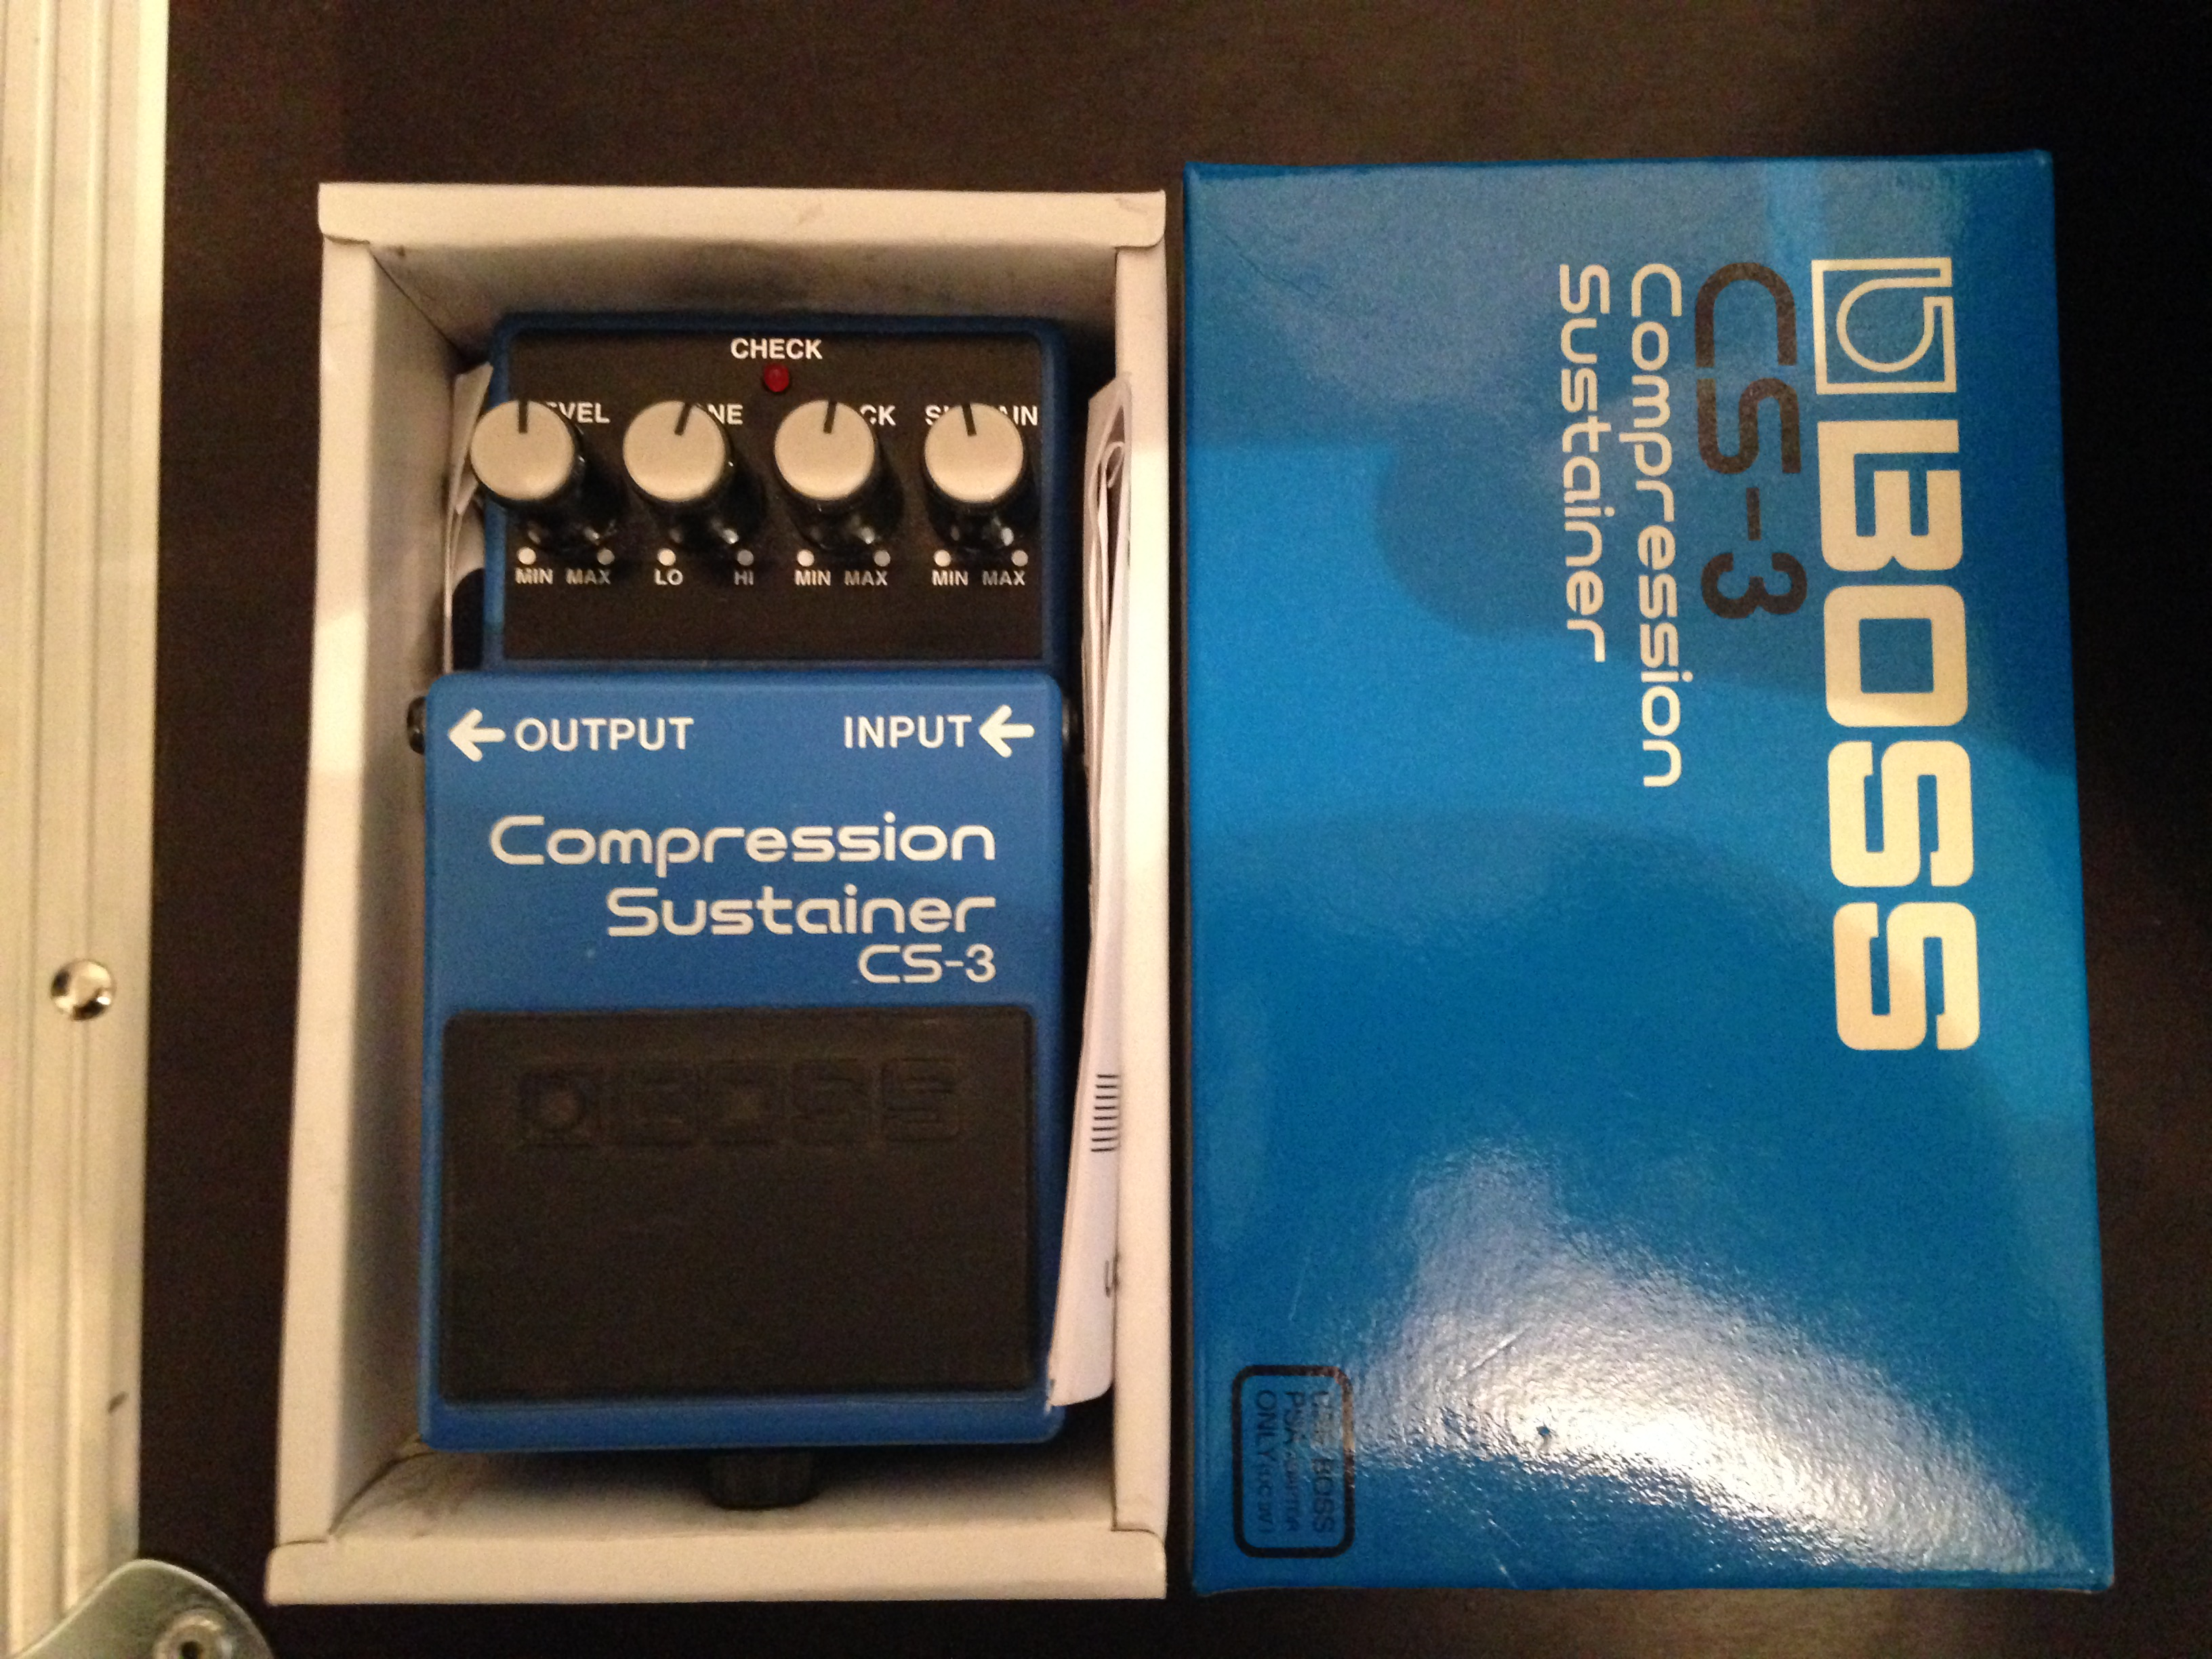 boss compressors home facebook images format jpg size 1600 x 1195 compression sustainer compressorsustainer for guitar from